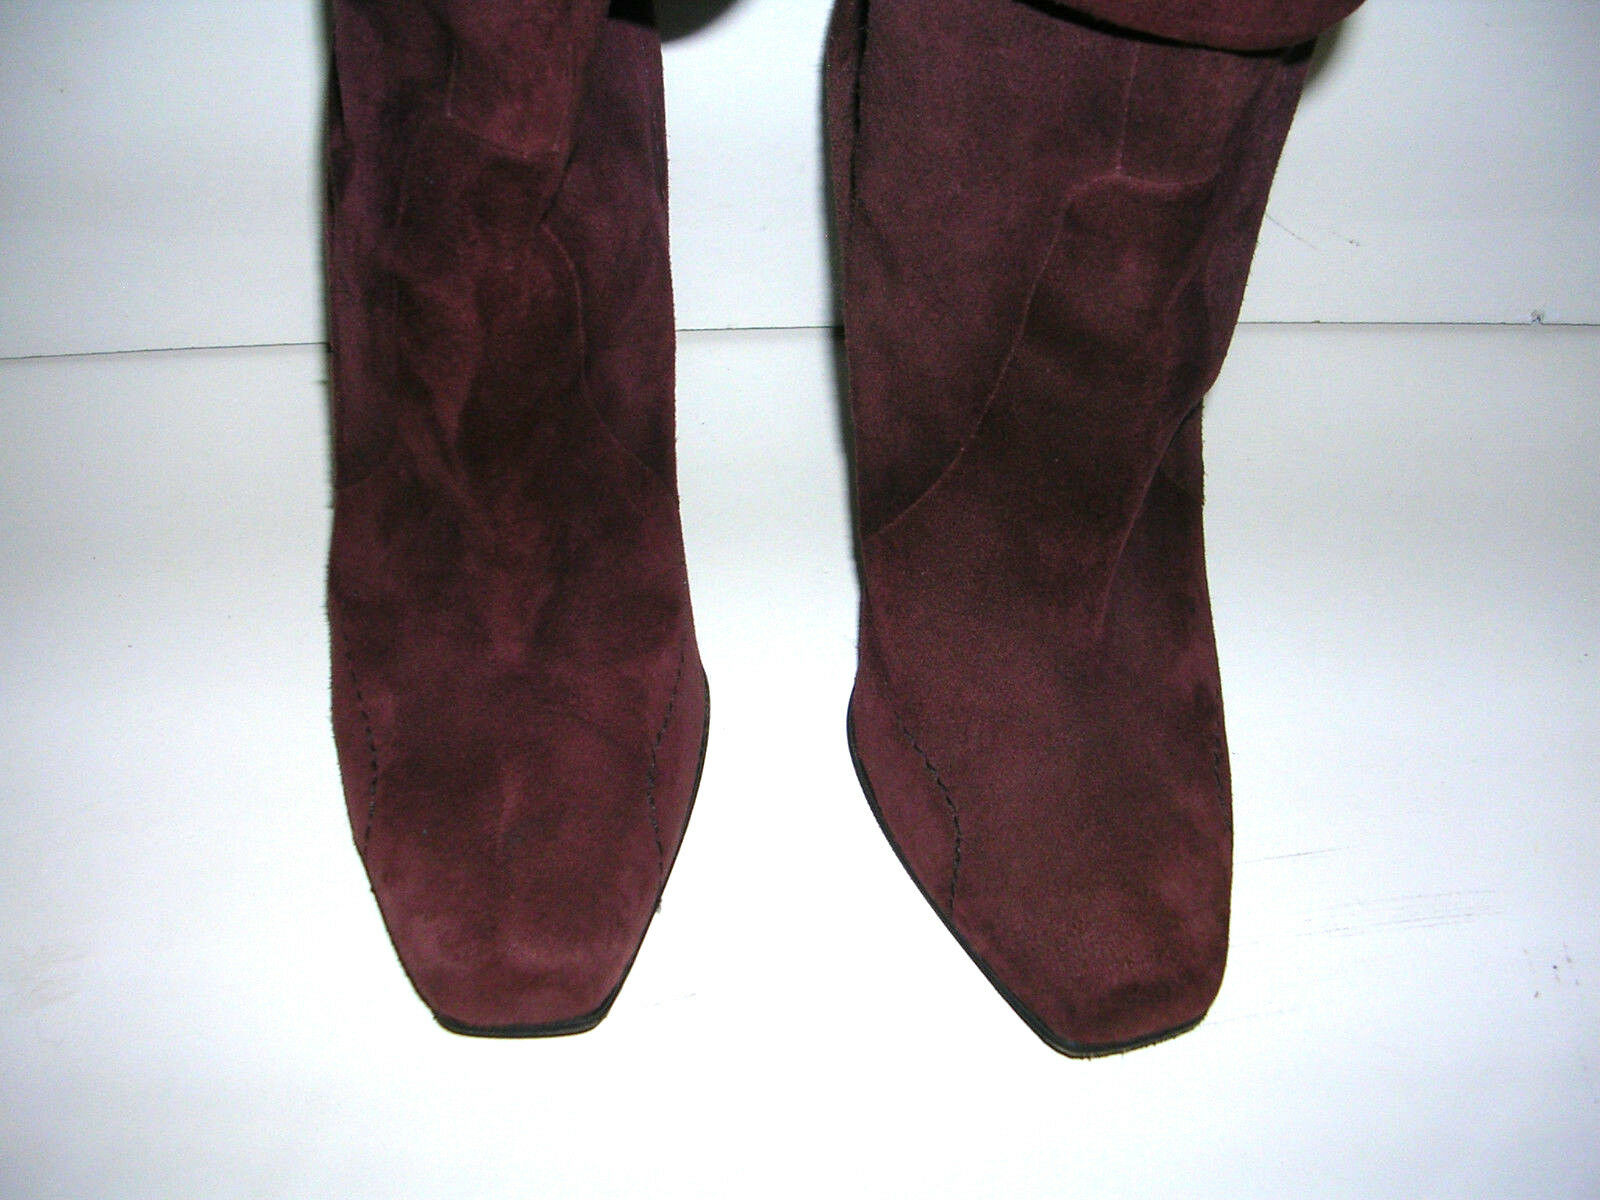 COSTUME NATIONAL BROWN SUEDE KNEE DOWN HIGH ROLL DOWN KNEE HIGH HEEL Stiefel SIZE 7 e34284